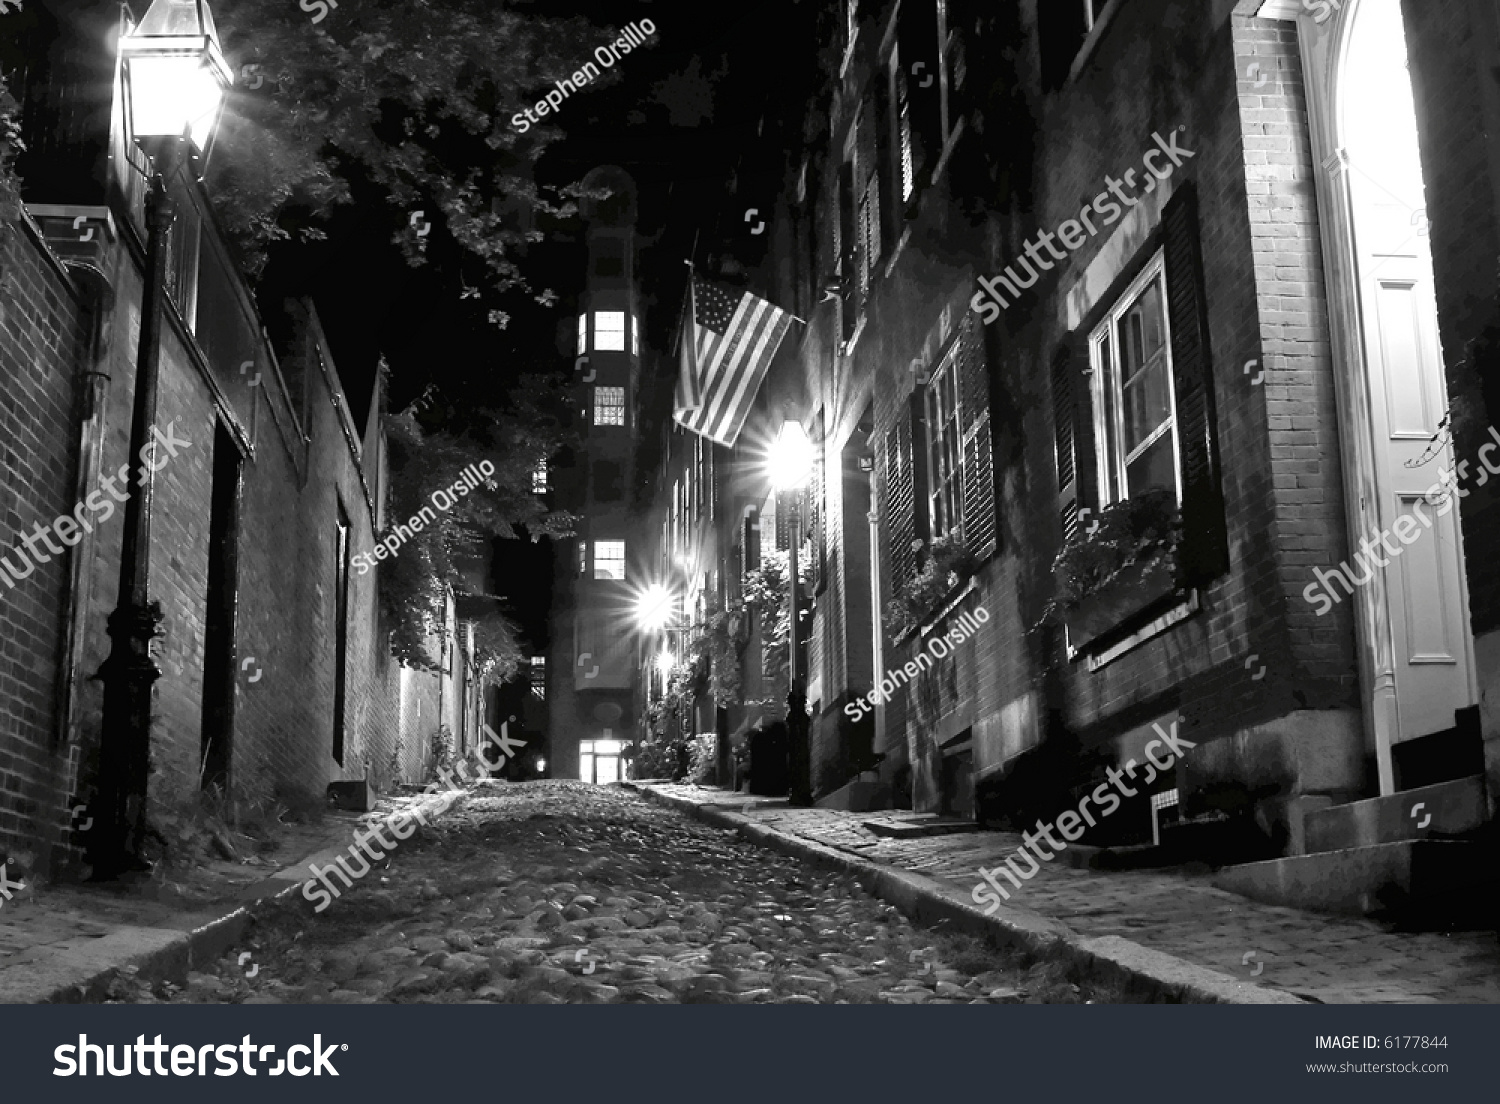 Victorian night lamps - B W Night Image Of An Old 19th Century Cobble Stone Road In Boston Massachusetts